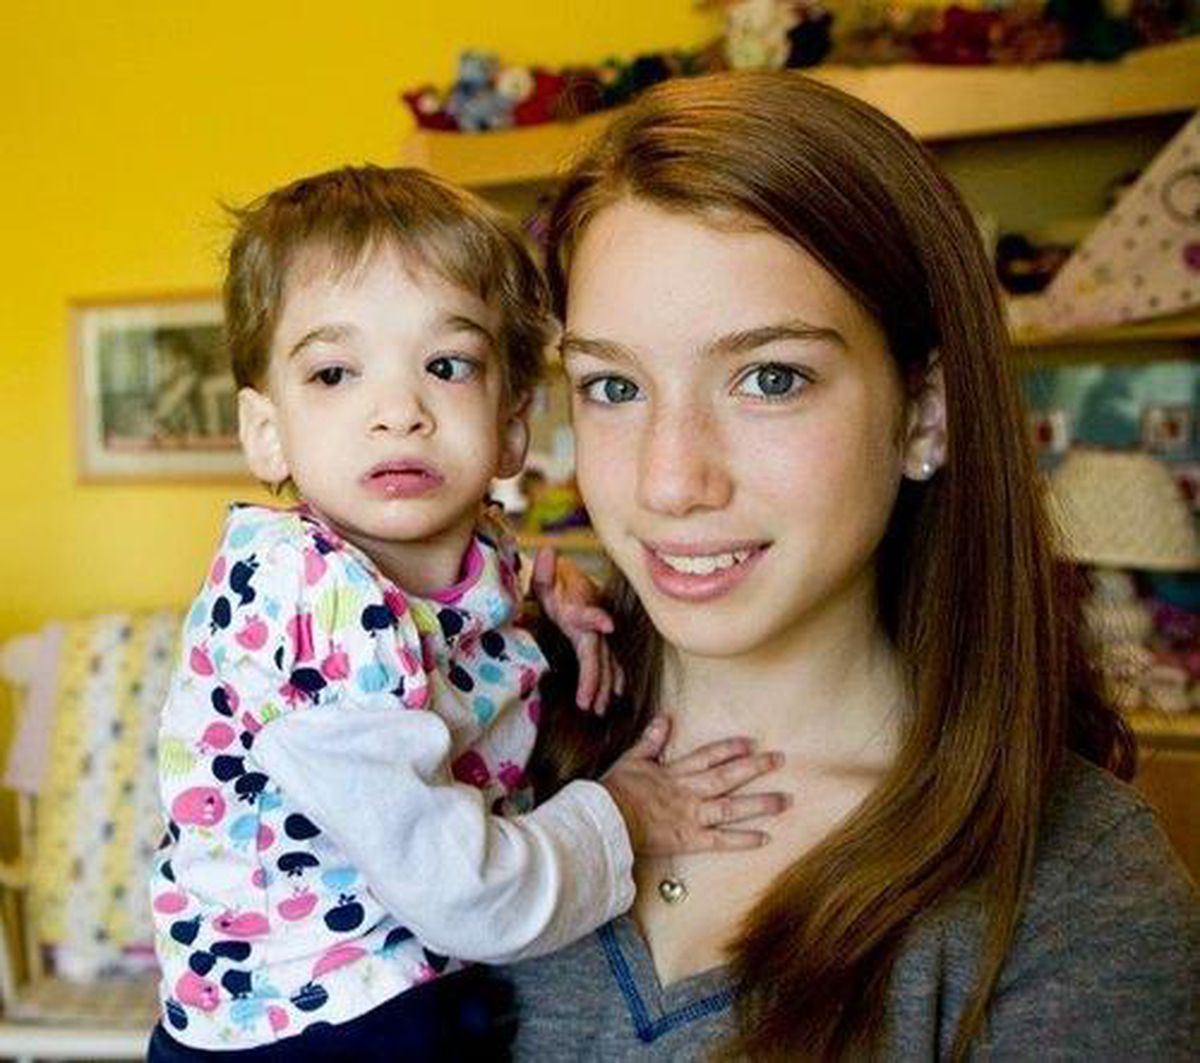 Brooke Greenberg, 20, who suffered from rare genetic condition, dies -  Baltimore Sun